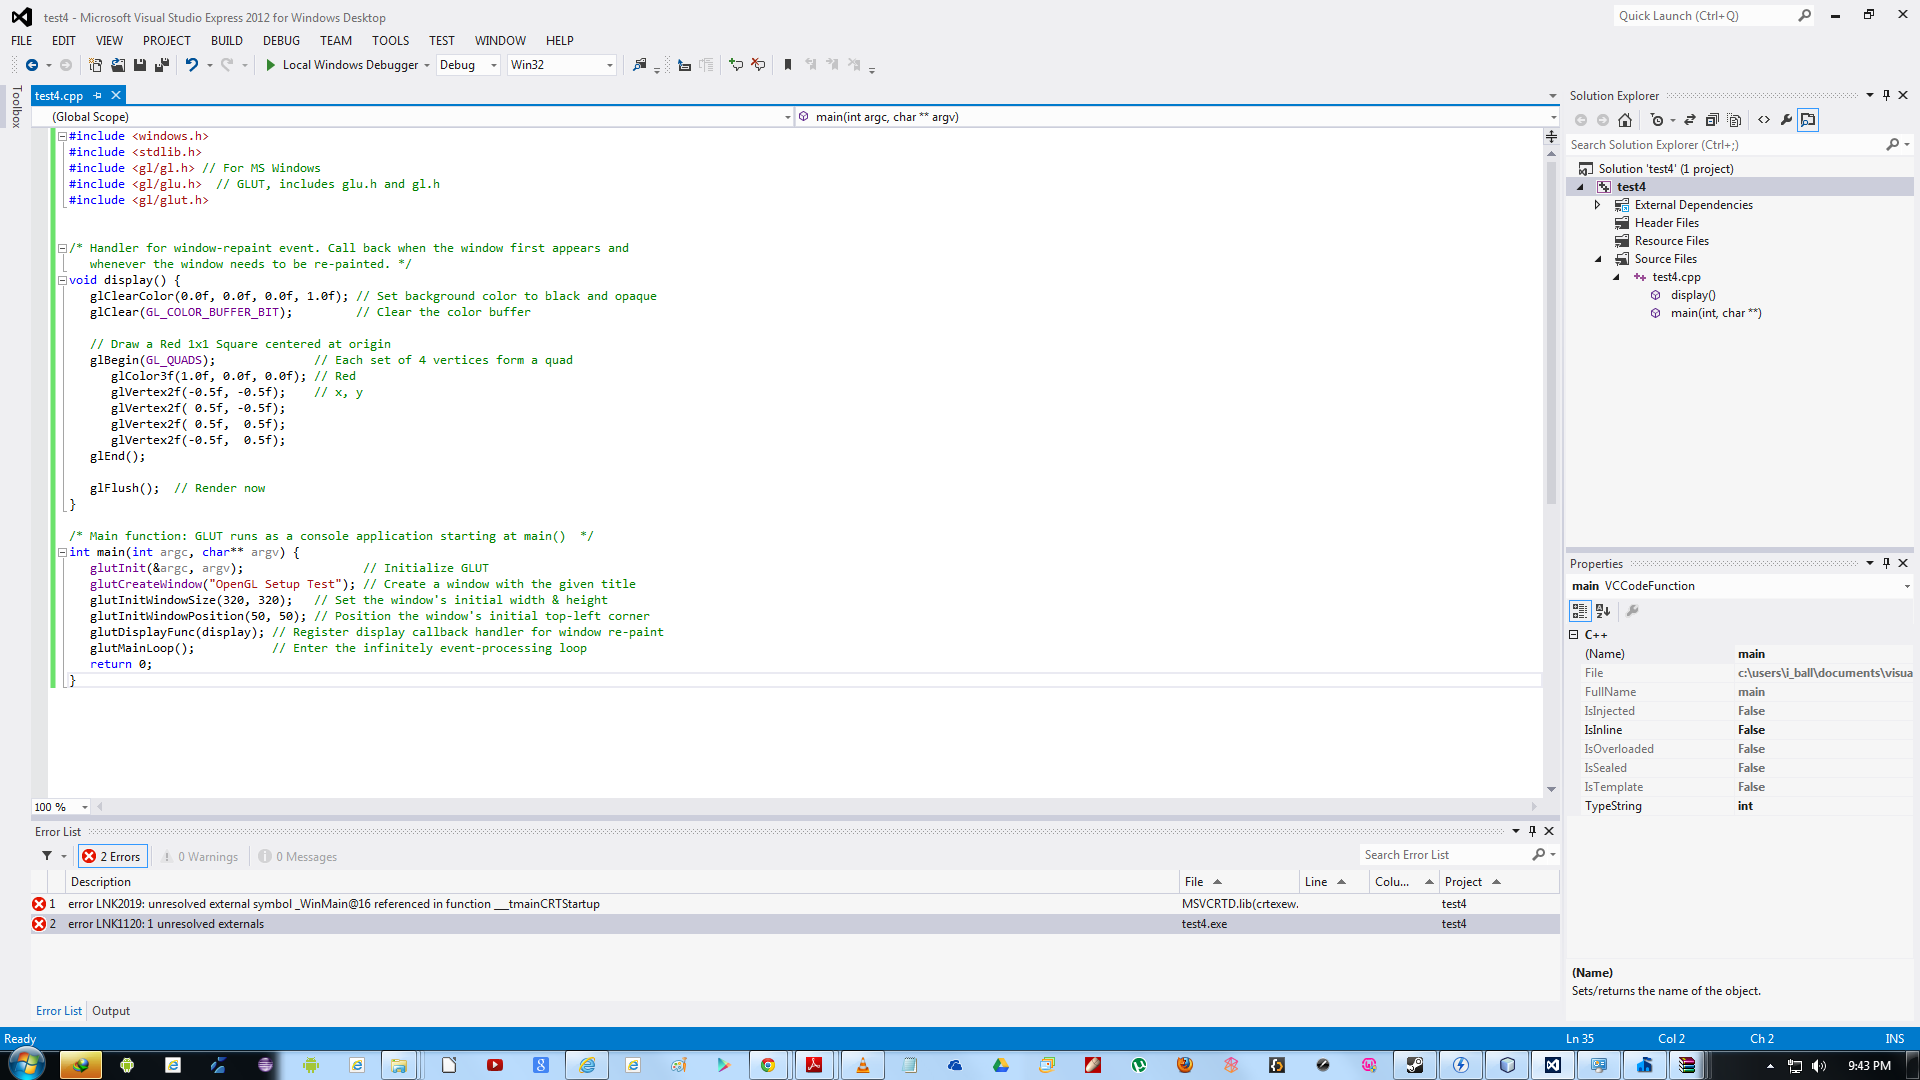 Configuring opengl in windows 7 on the microsoft visual studio i have downloaded and installed and followed these procedures as below can anyone help me if i have gone wrong biocorpaavc